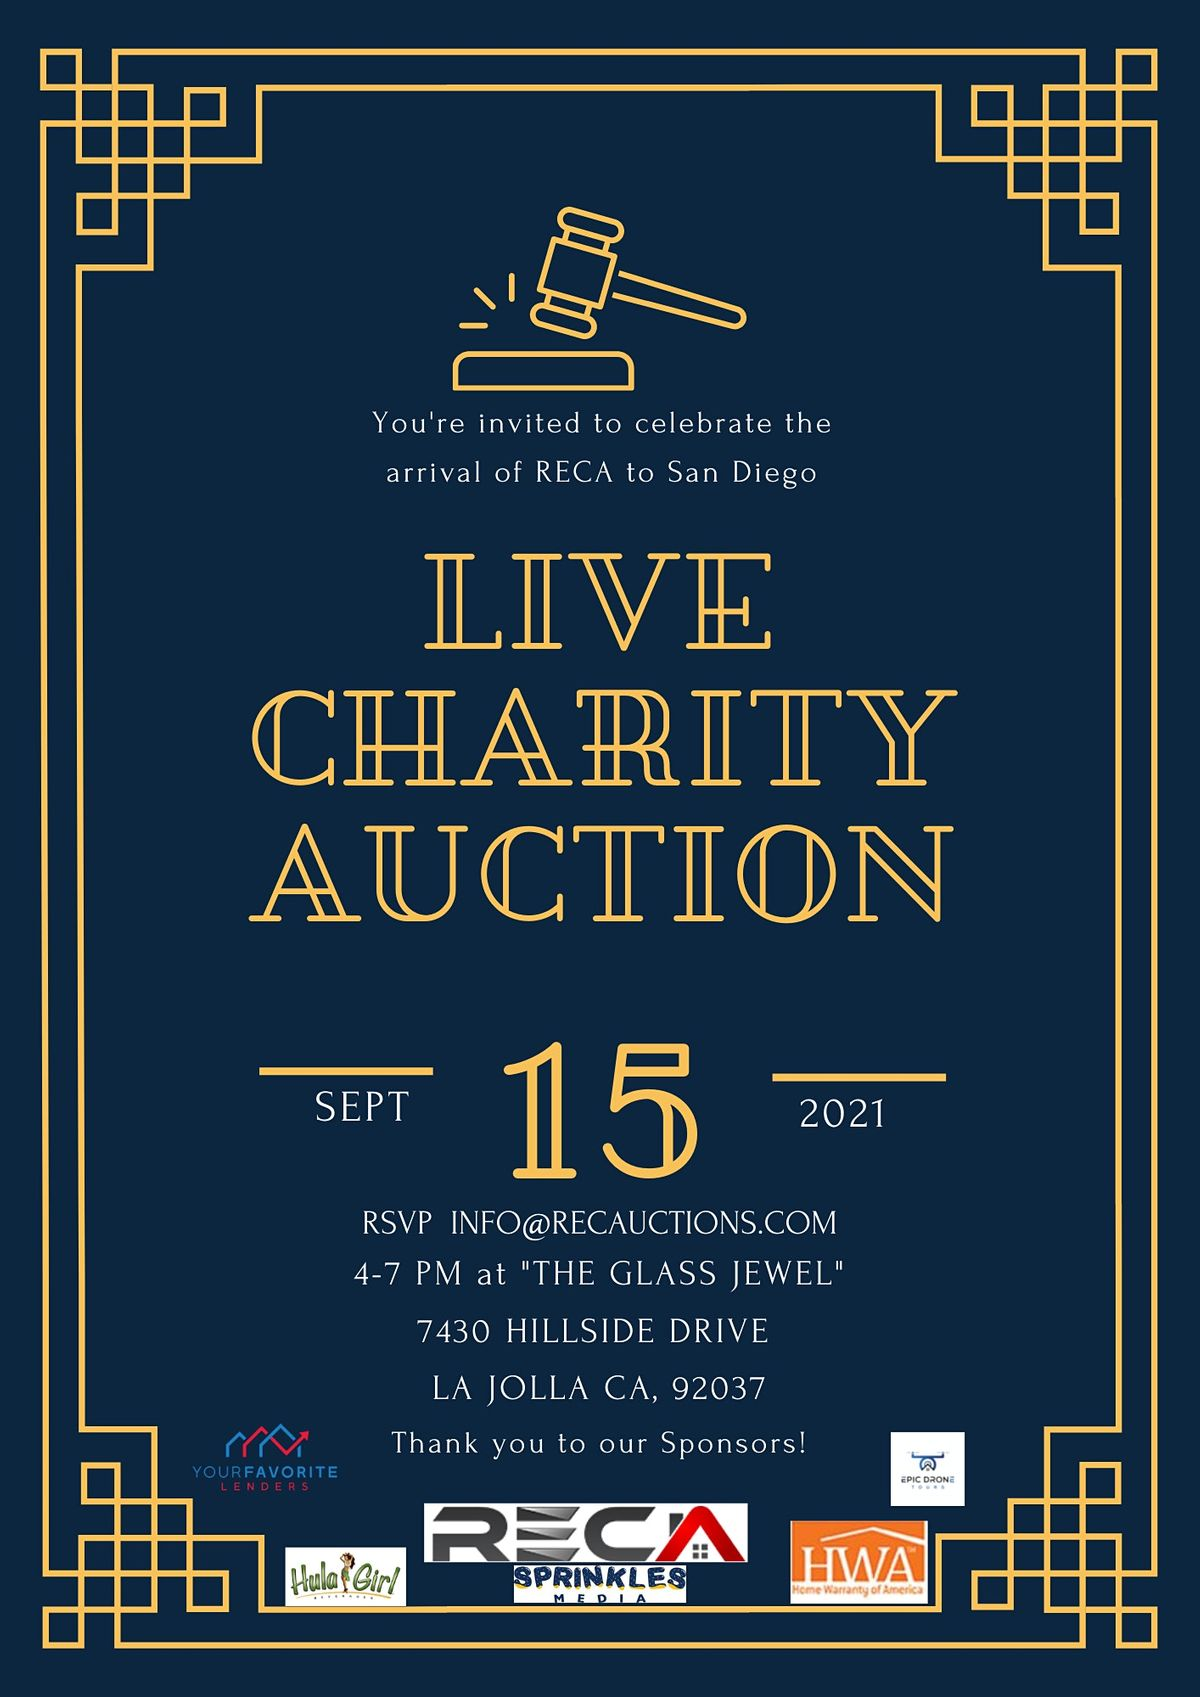 The Arrival of RECA  to San Diego  - Live Charity Auction